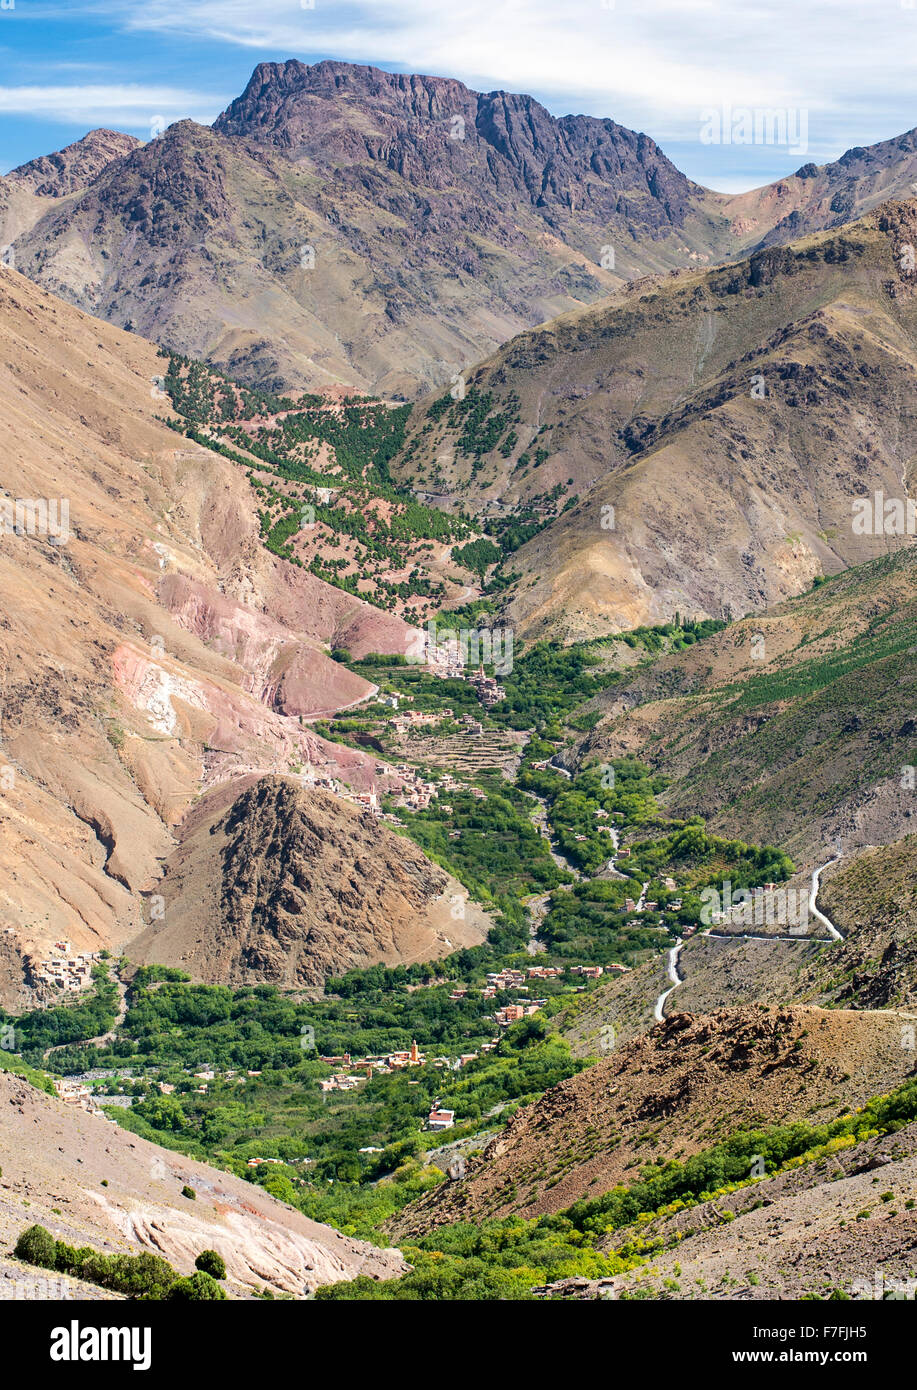 Landscape scenery and the villages of Ait Souka and Imlil in the Atlas mountains near in Morocco. - Stock Image